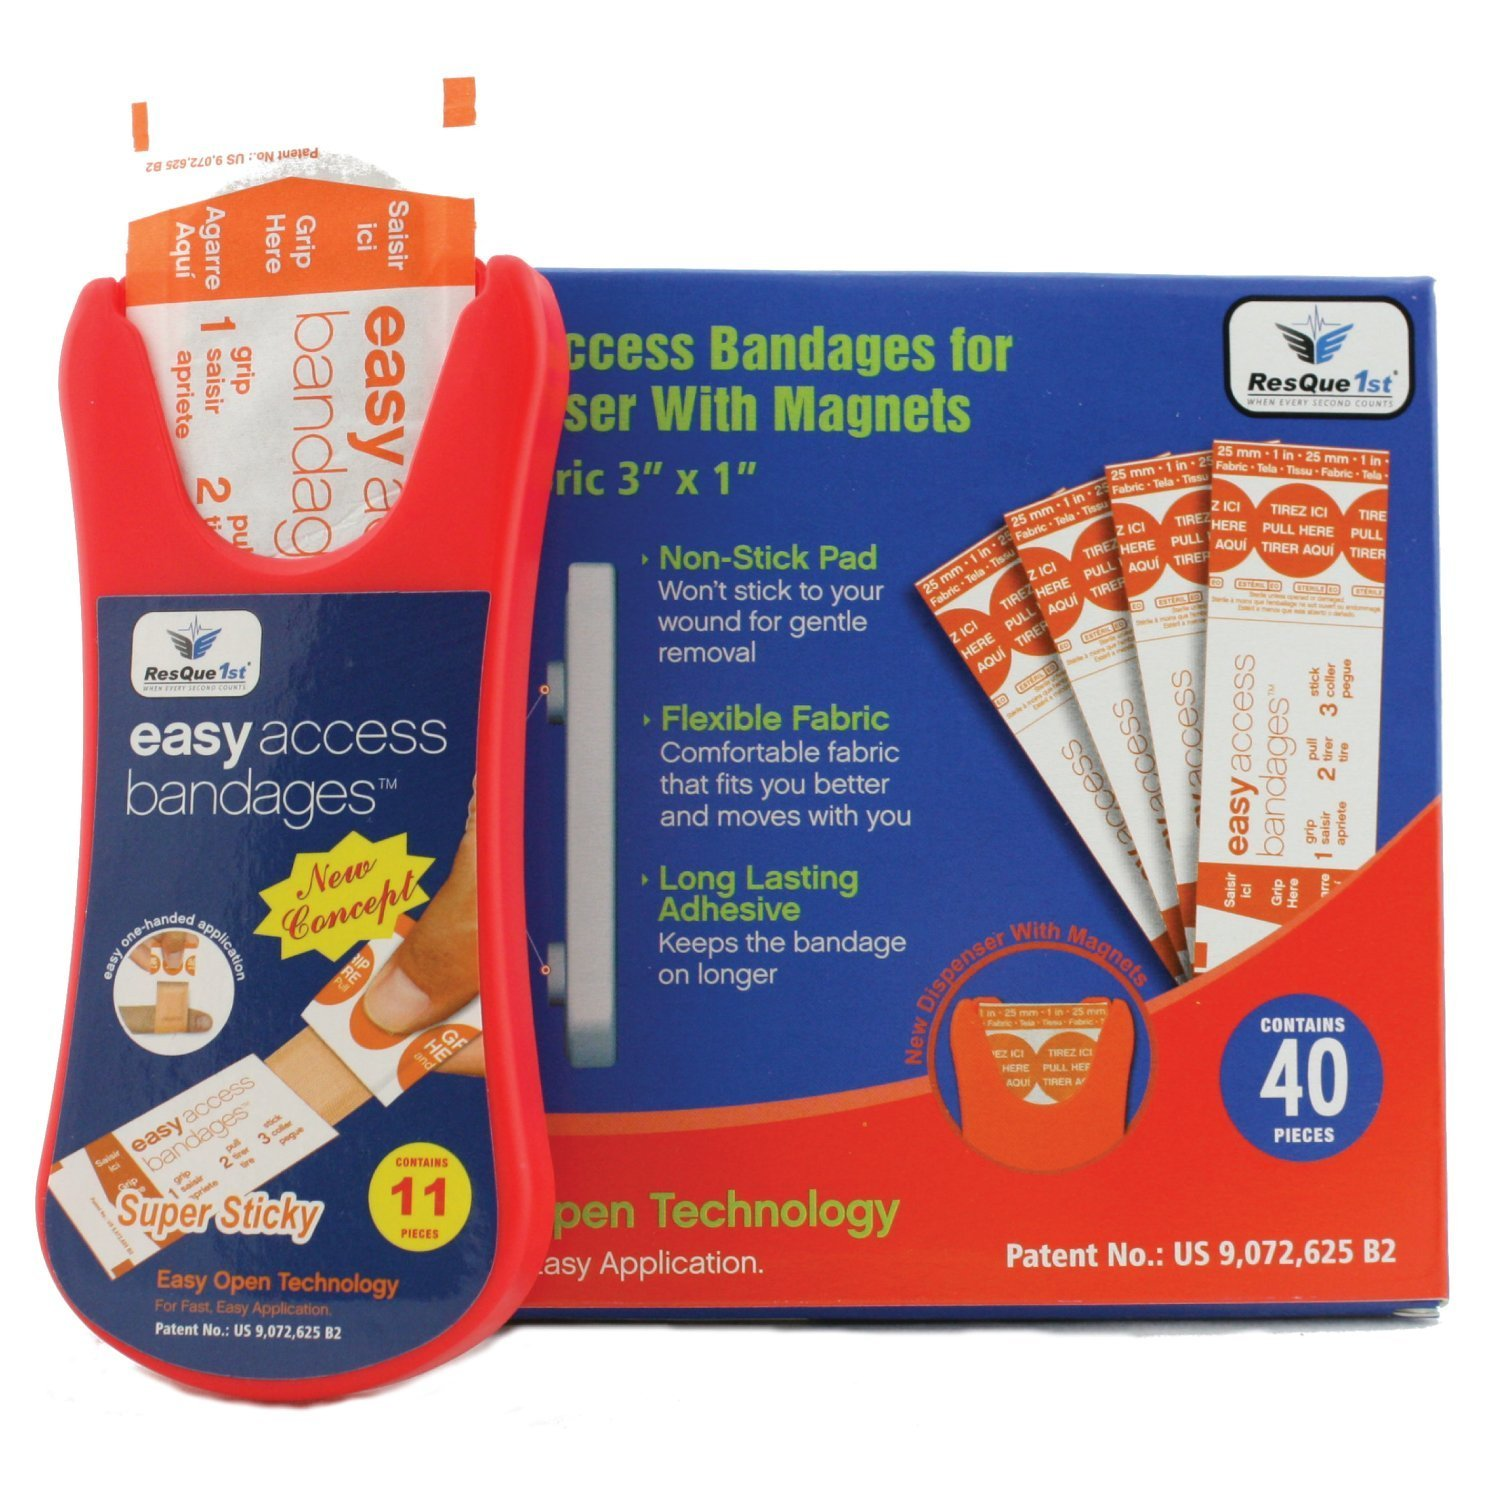 Fabric Adhesive Bandages Magnetic Dispenser: with Refill Kit, 50 Count, with One Hand Easy Access for Travel, Toiletries, First Aid Kits